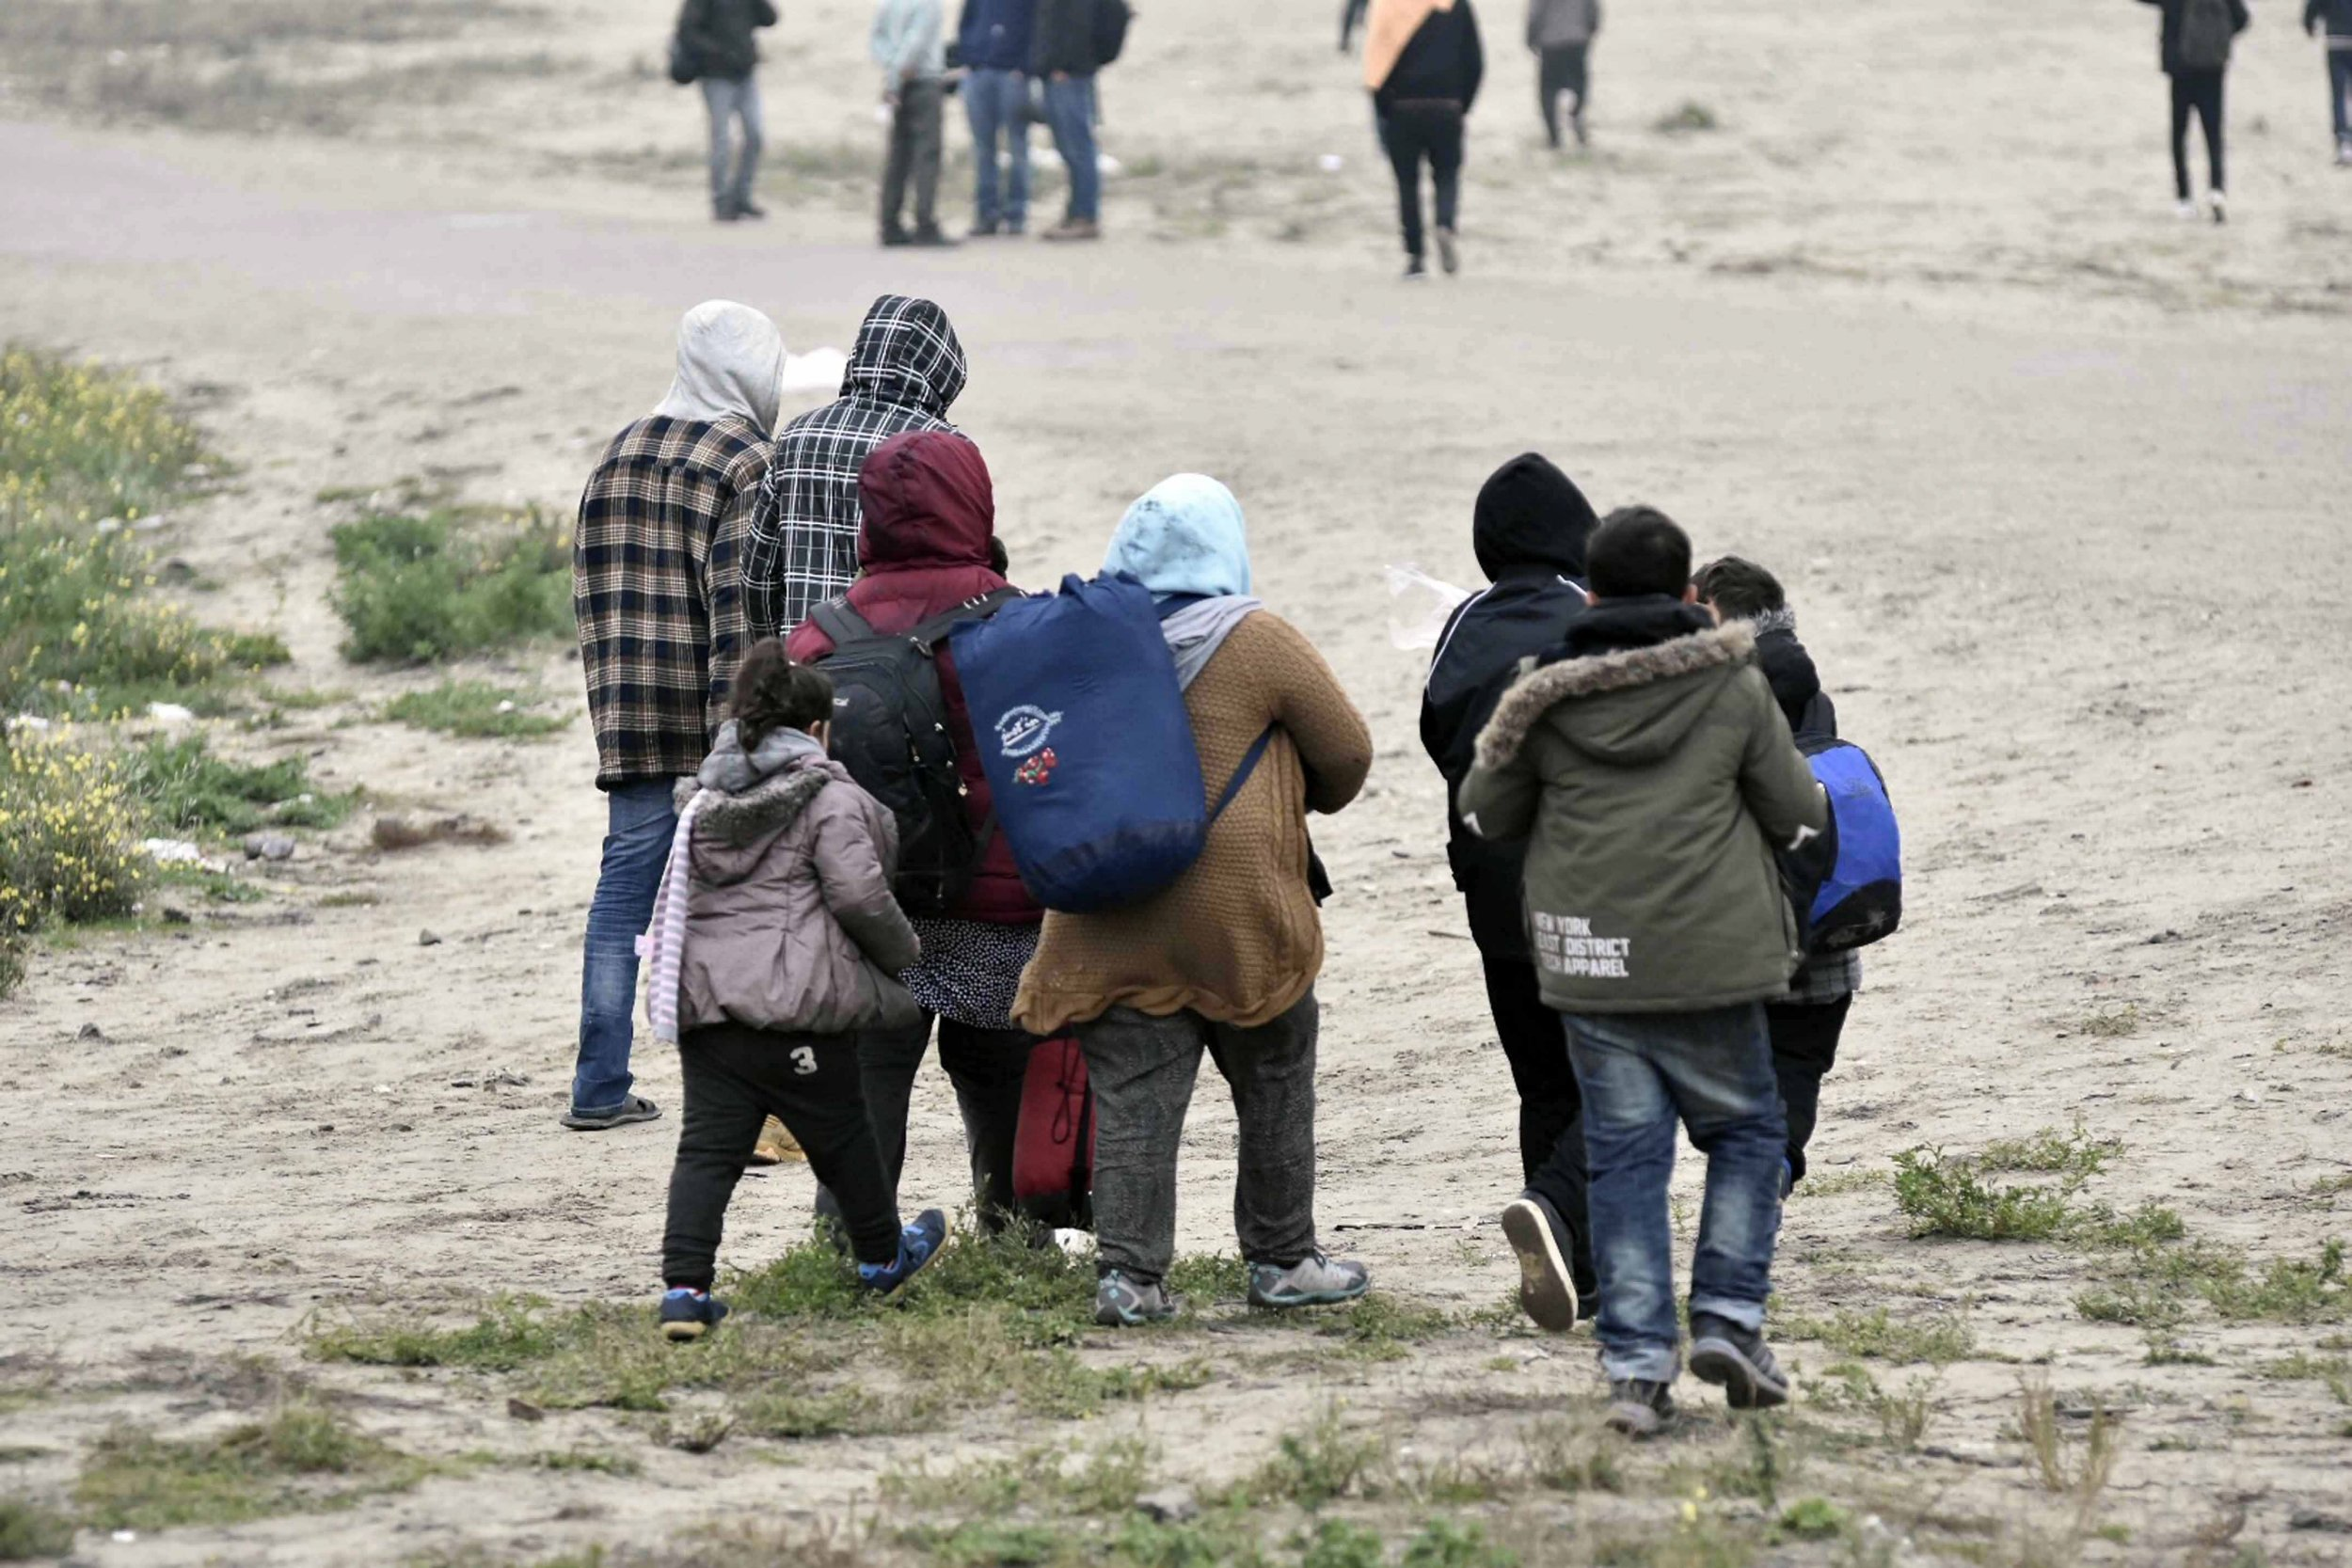 What is next for residents of the Calais Jungle after the camp's demolition?